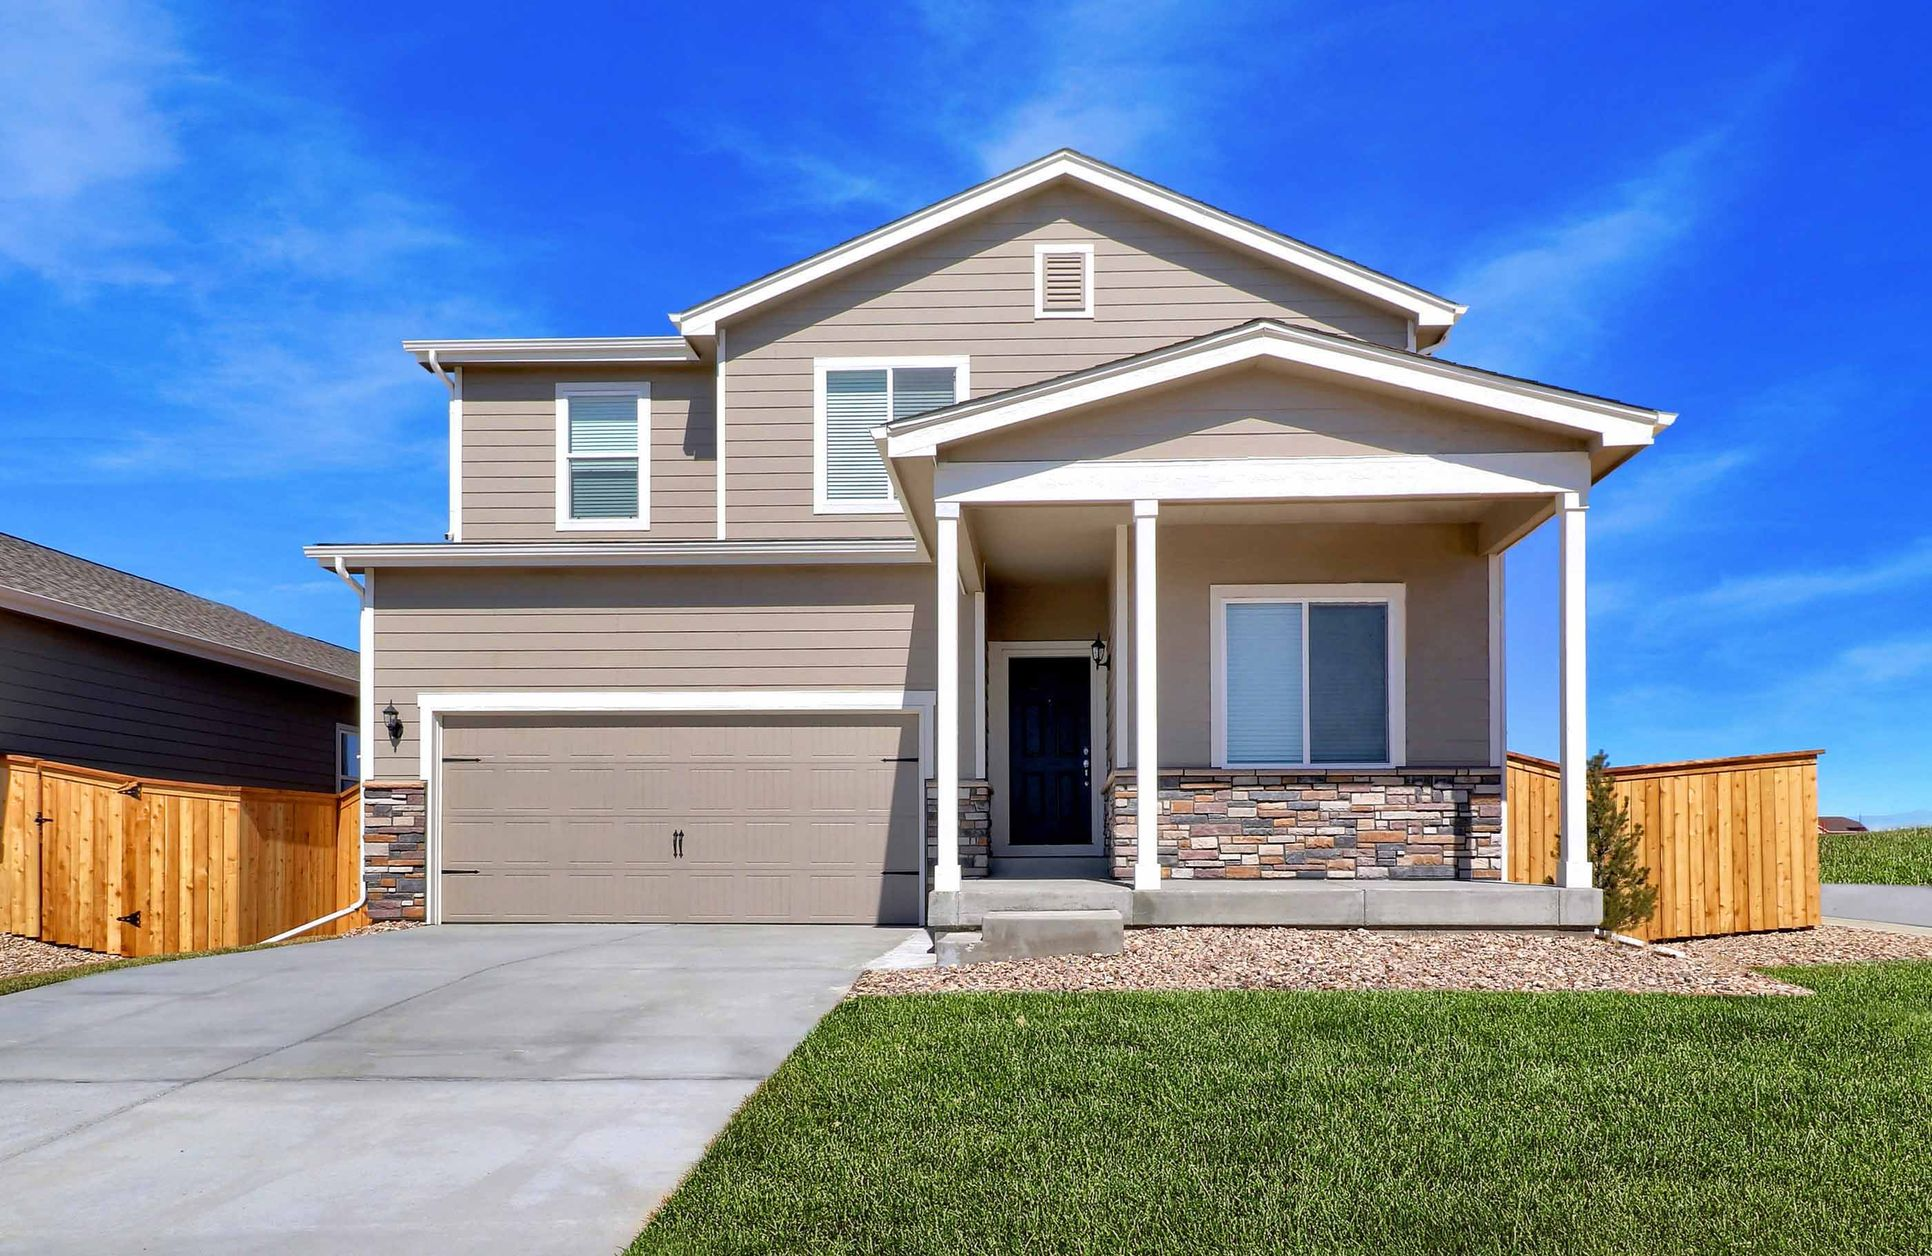 The Harvard by LGI Homes:Gorgeous and spacious 5 bedroom home!